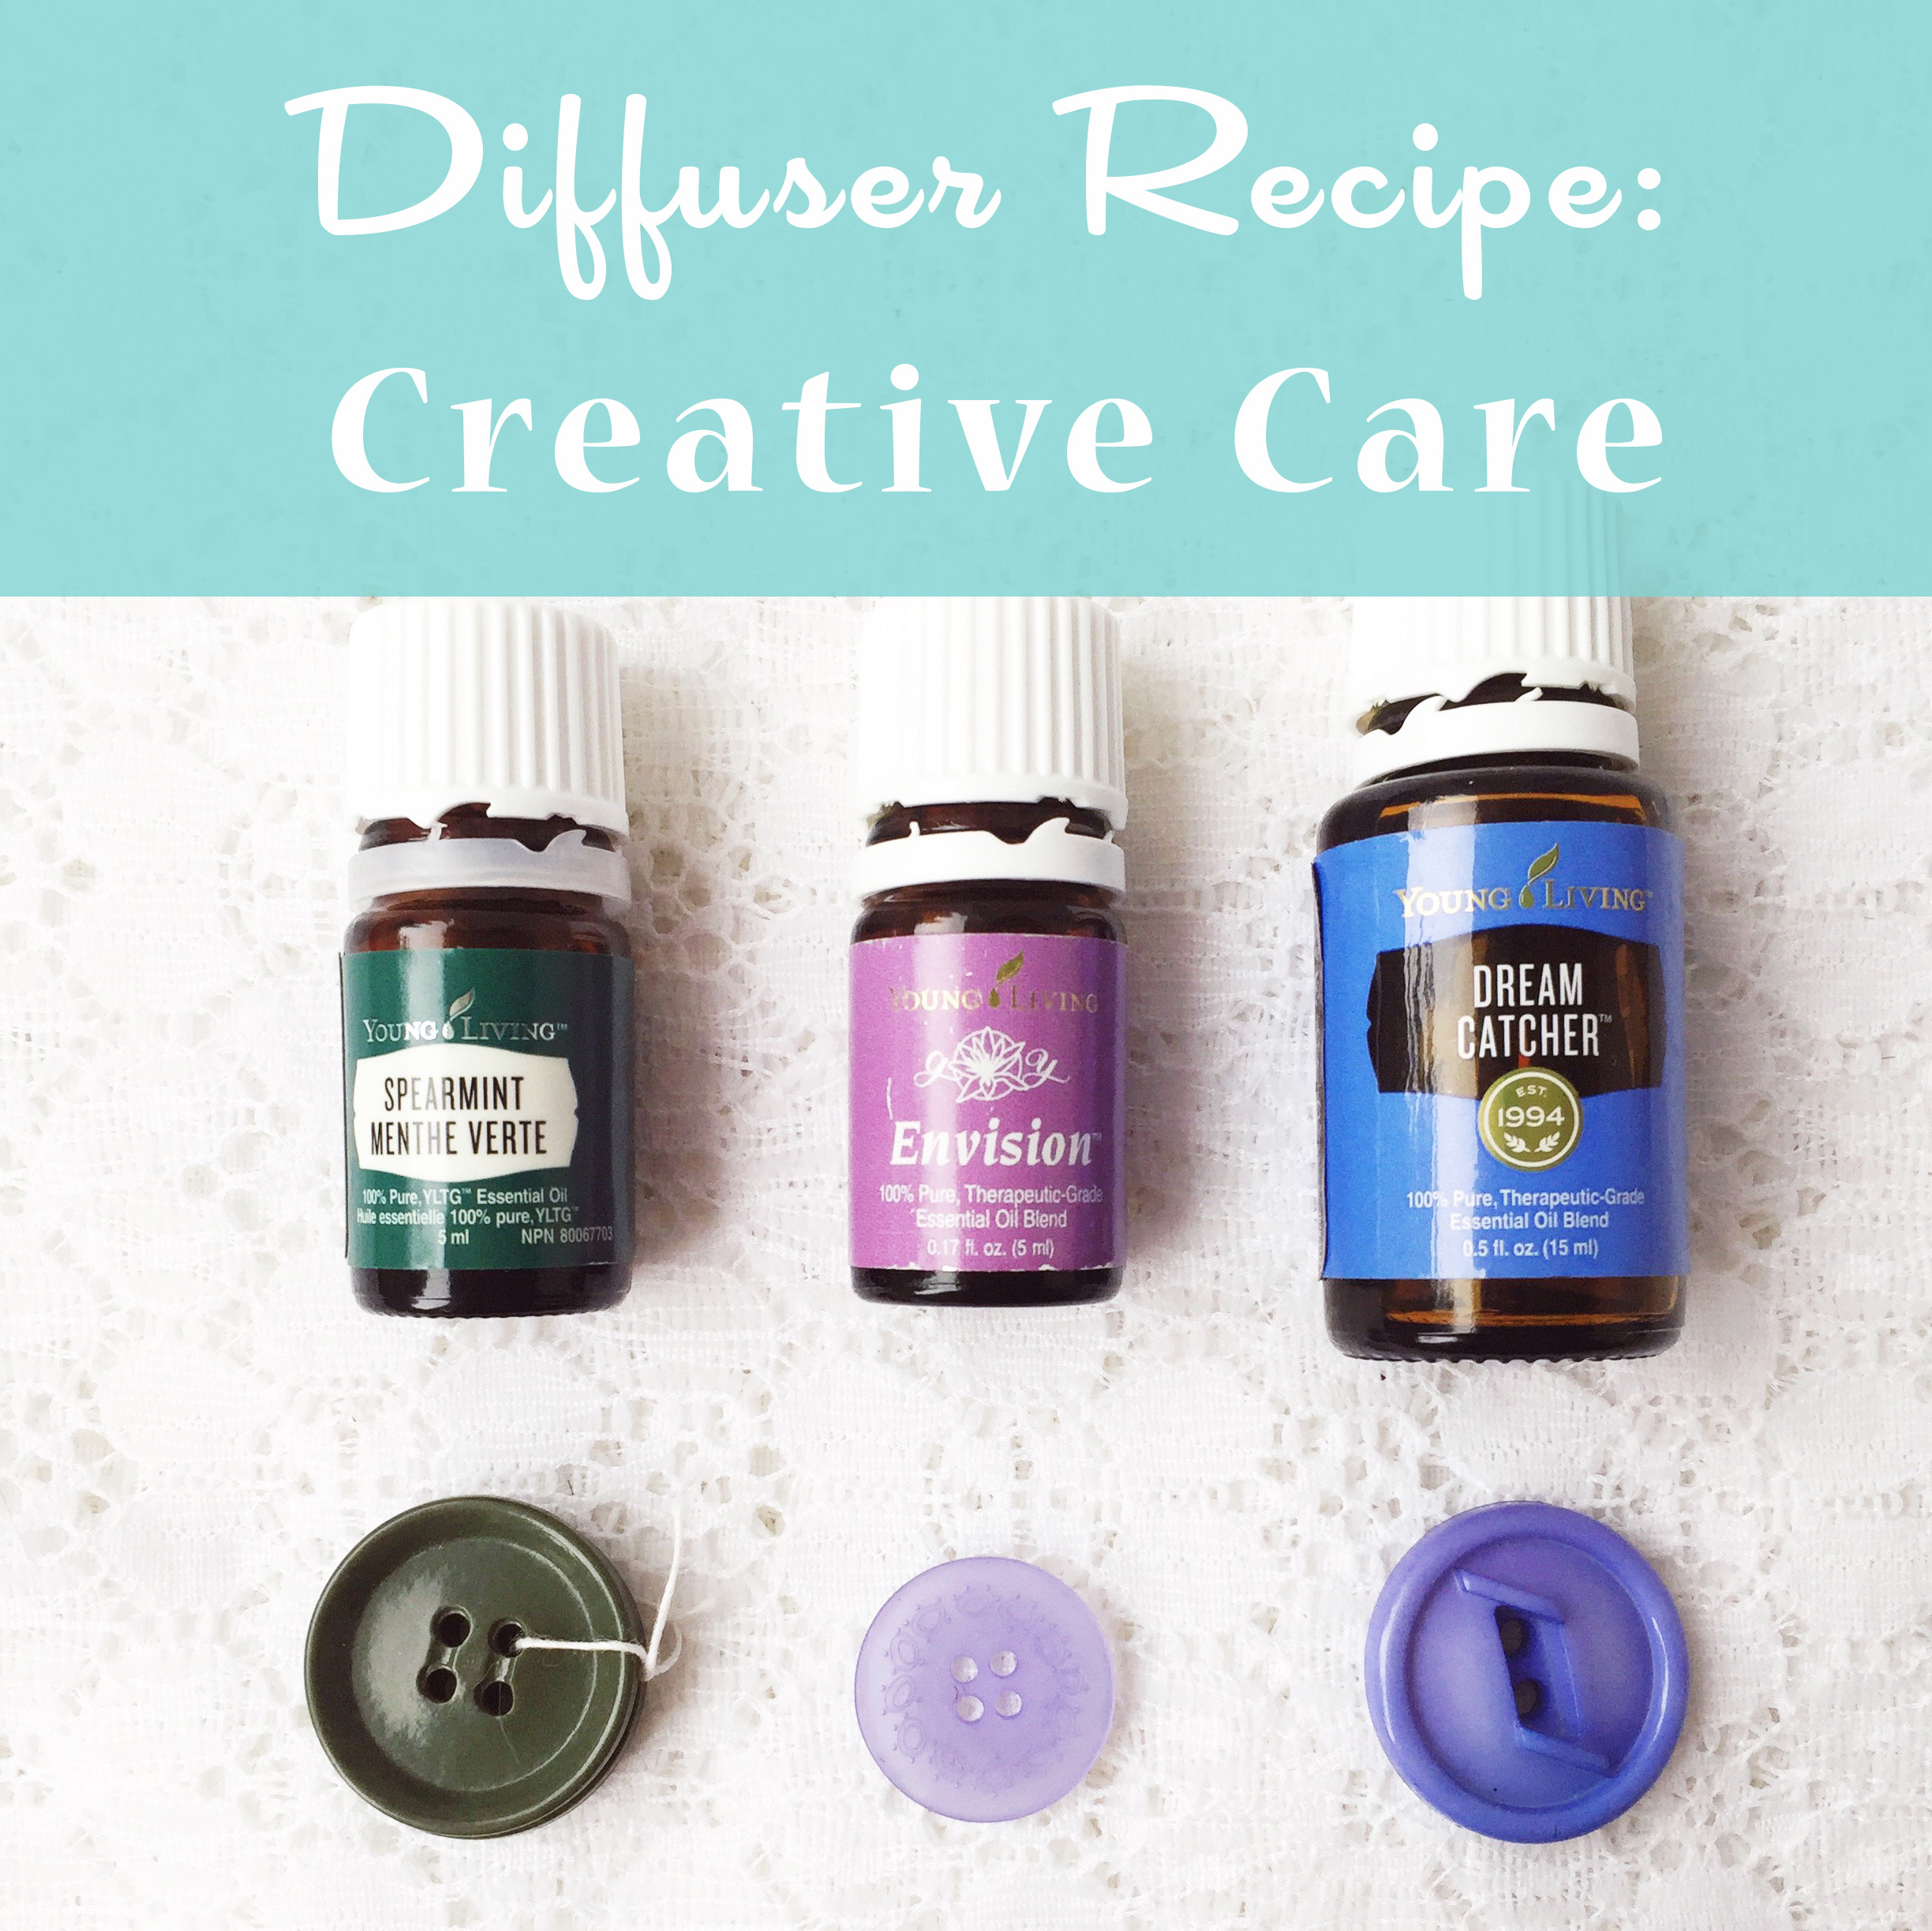 Living with Essential Oils: Creative Care ~ Diffuser recipe by Bubblegum Sass ~ Focused, Thoughtful, Creative ~ Everything you need to stay creative